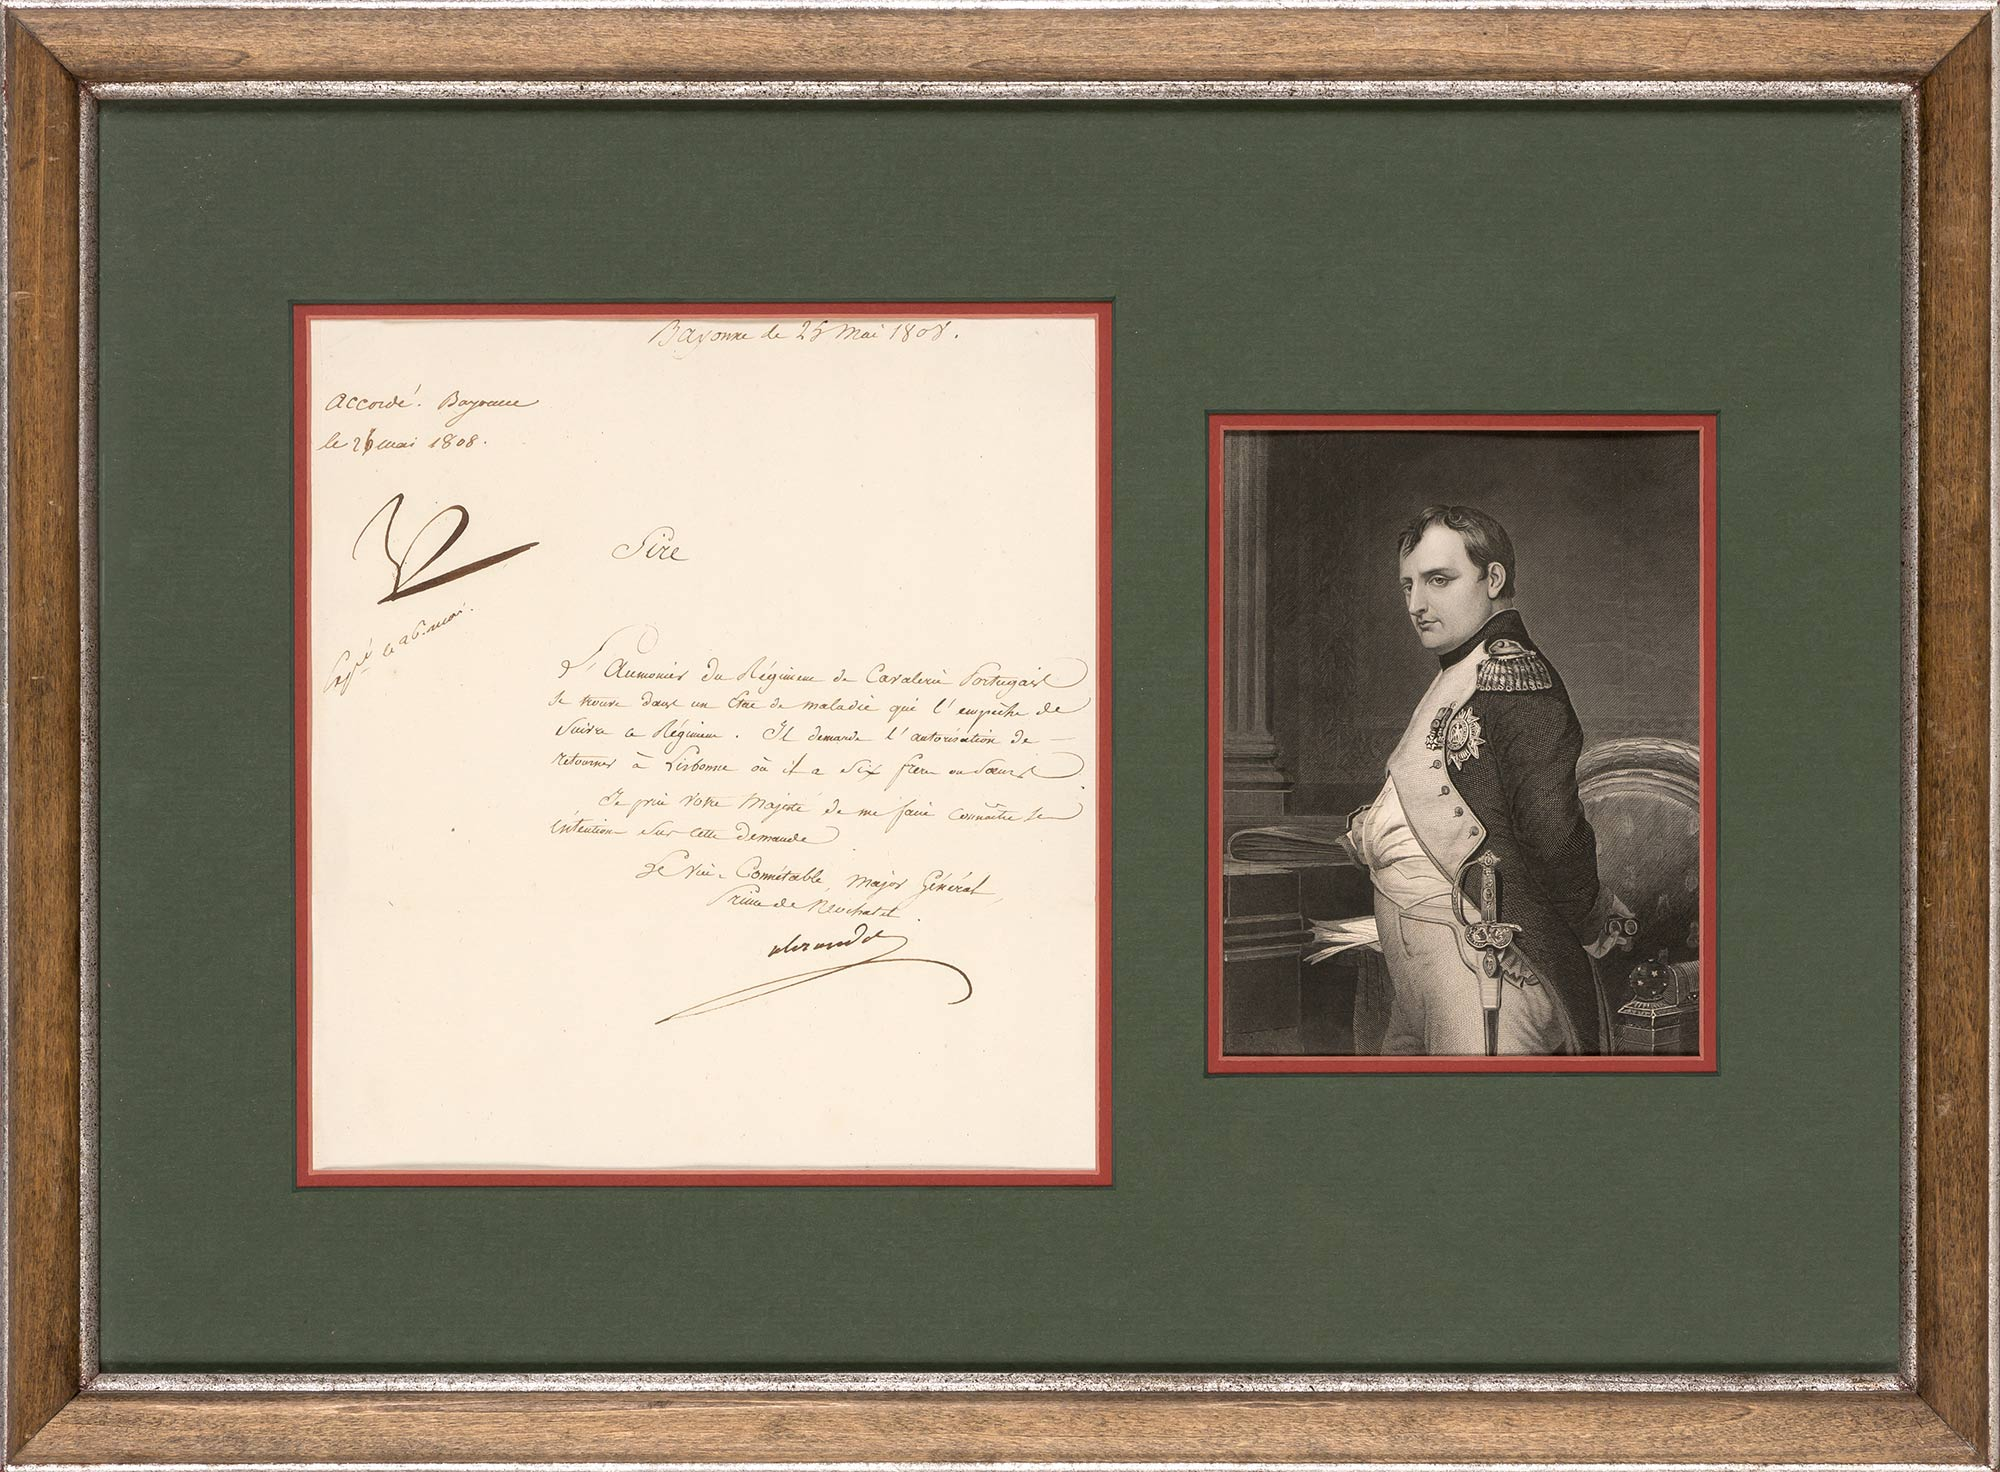 Lot image - NAPOLÉON BONAPARTE  Document signed Np by Napoleon as Emperor of the French.